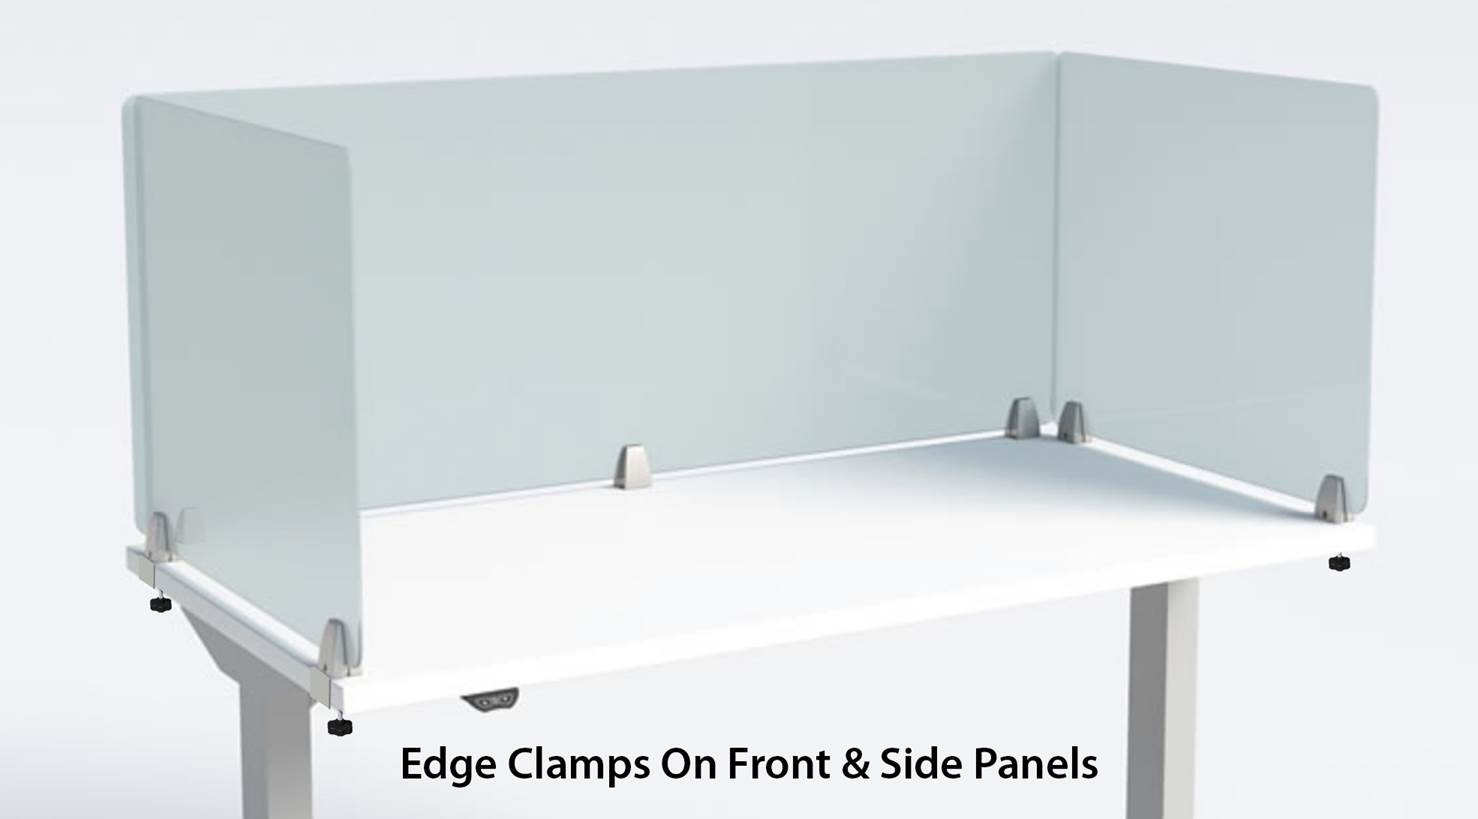 Edge Clamps on Front and Side Panels